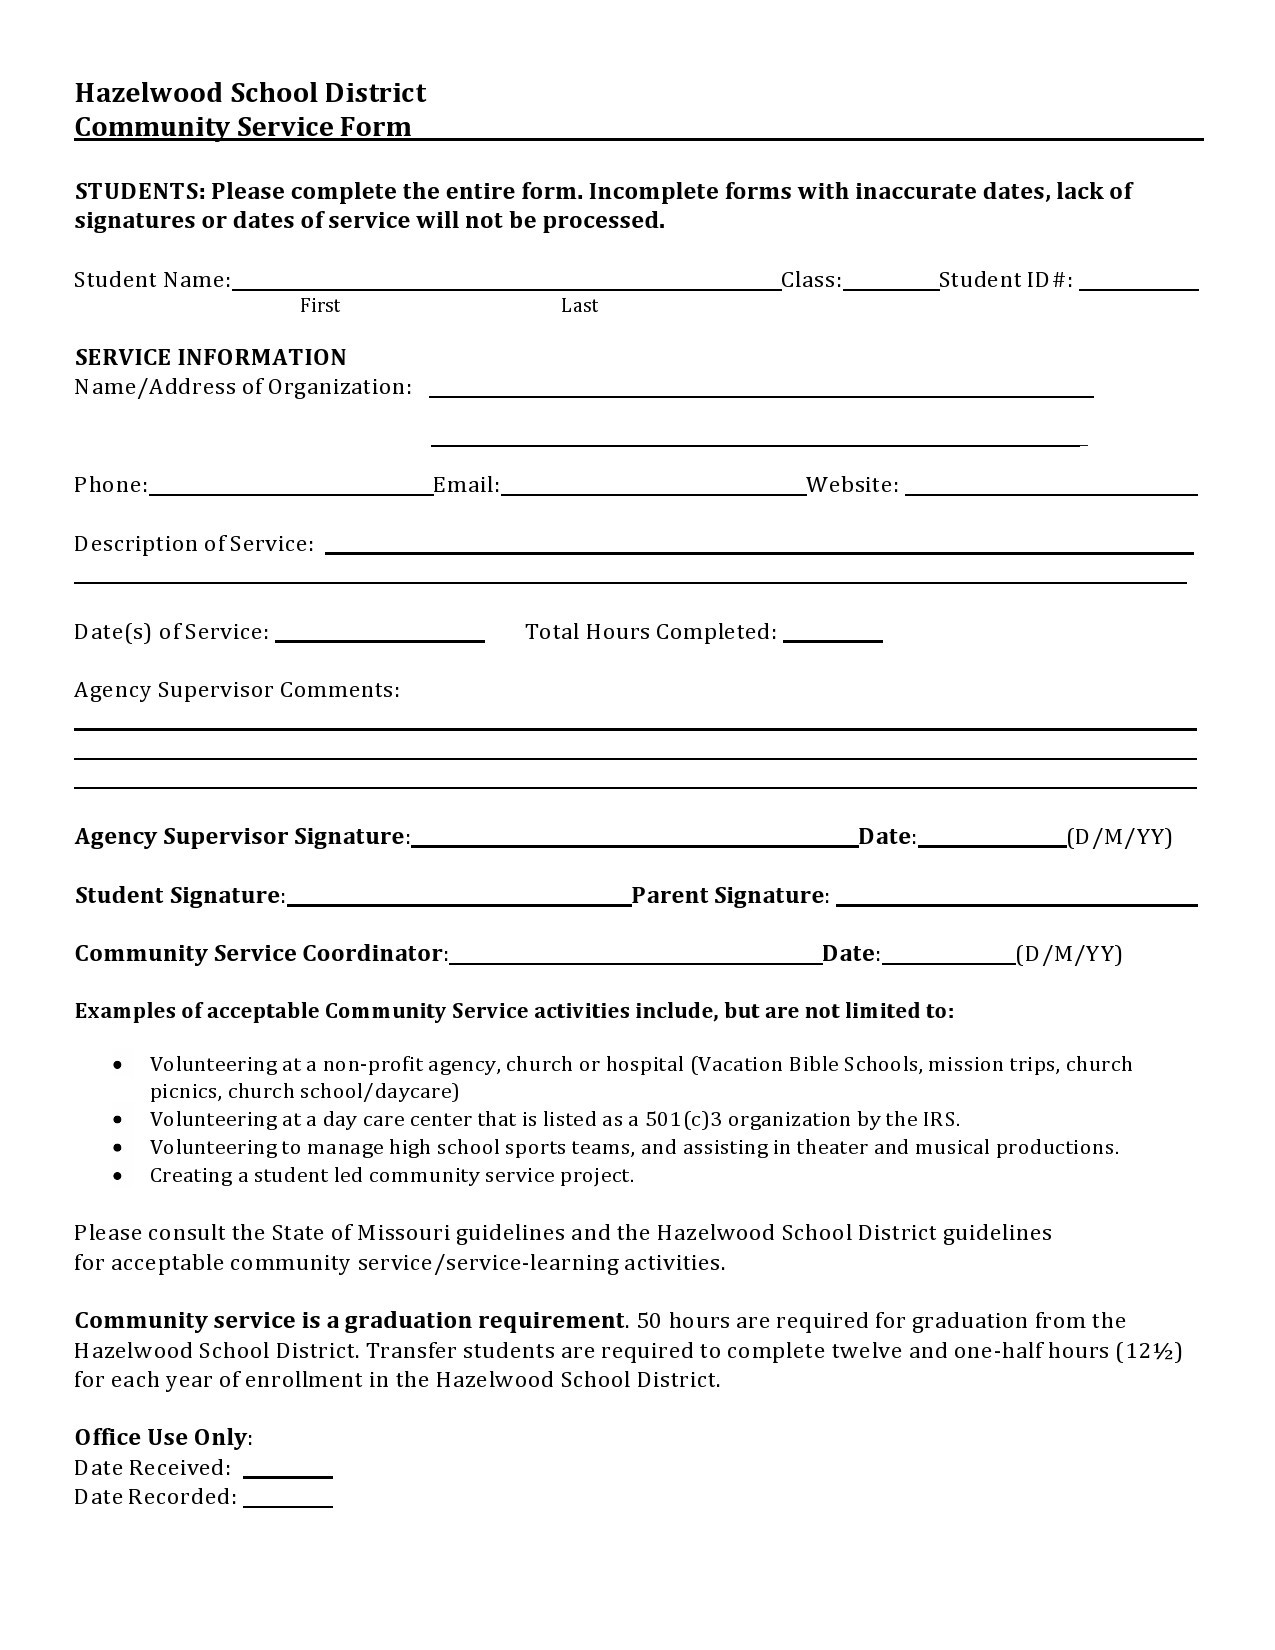 Free community service form 21